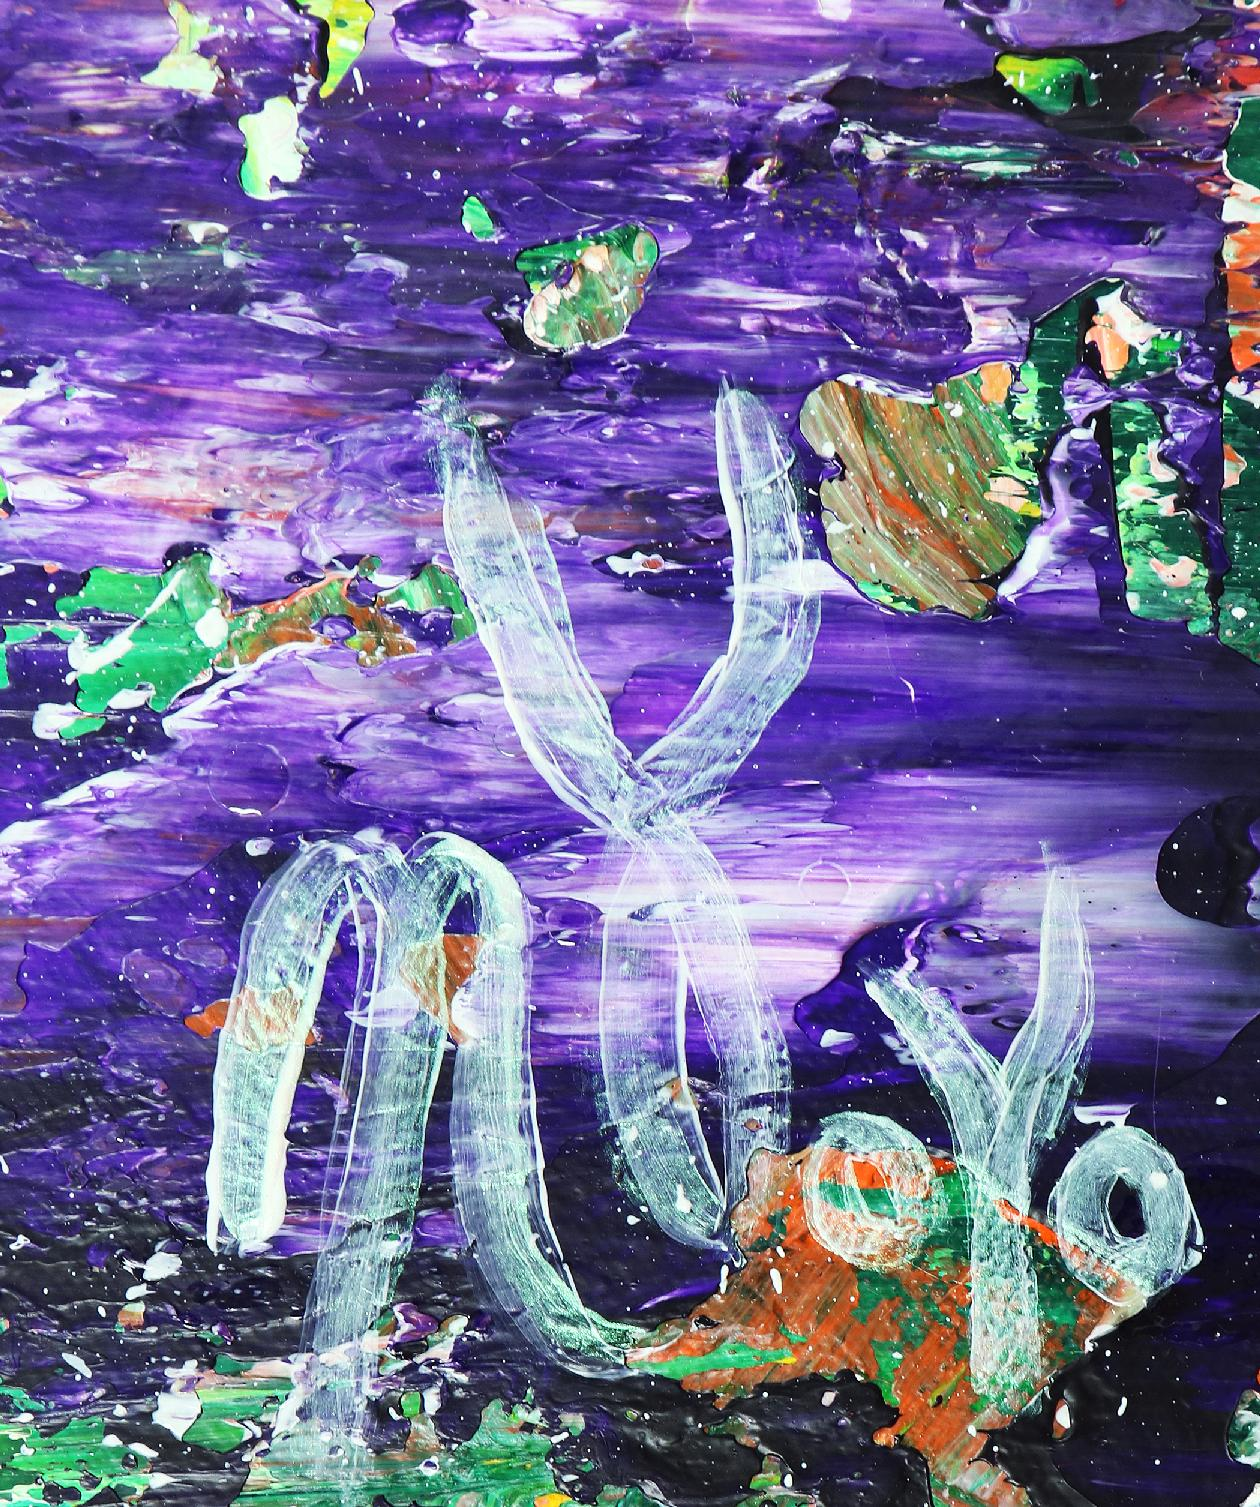 Signature - Mystery Garden ( In scarlet, purple and green) (2020) Abstract painting by Nestor Toro